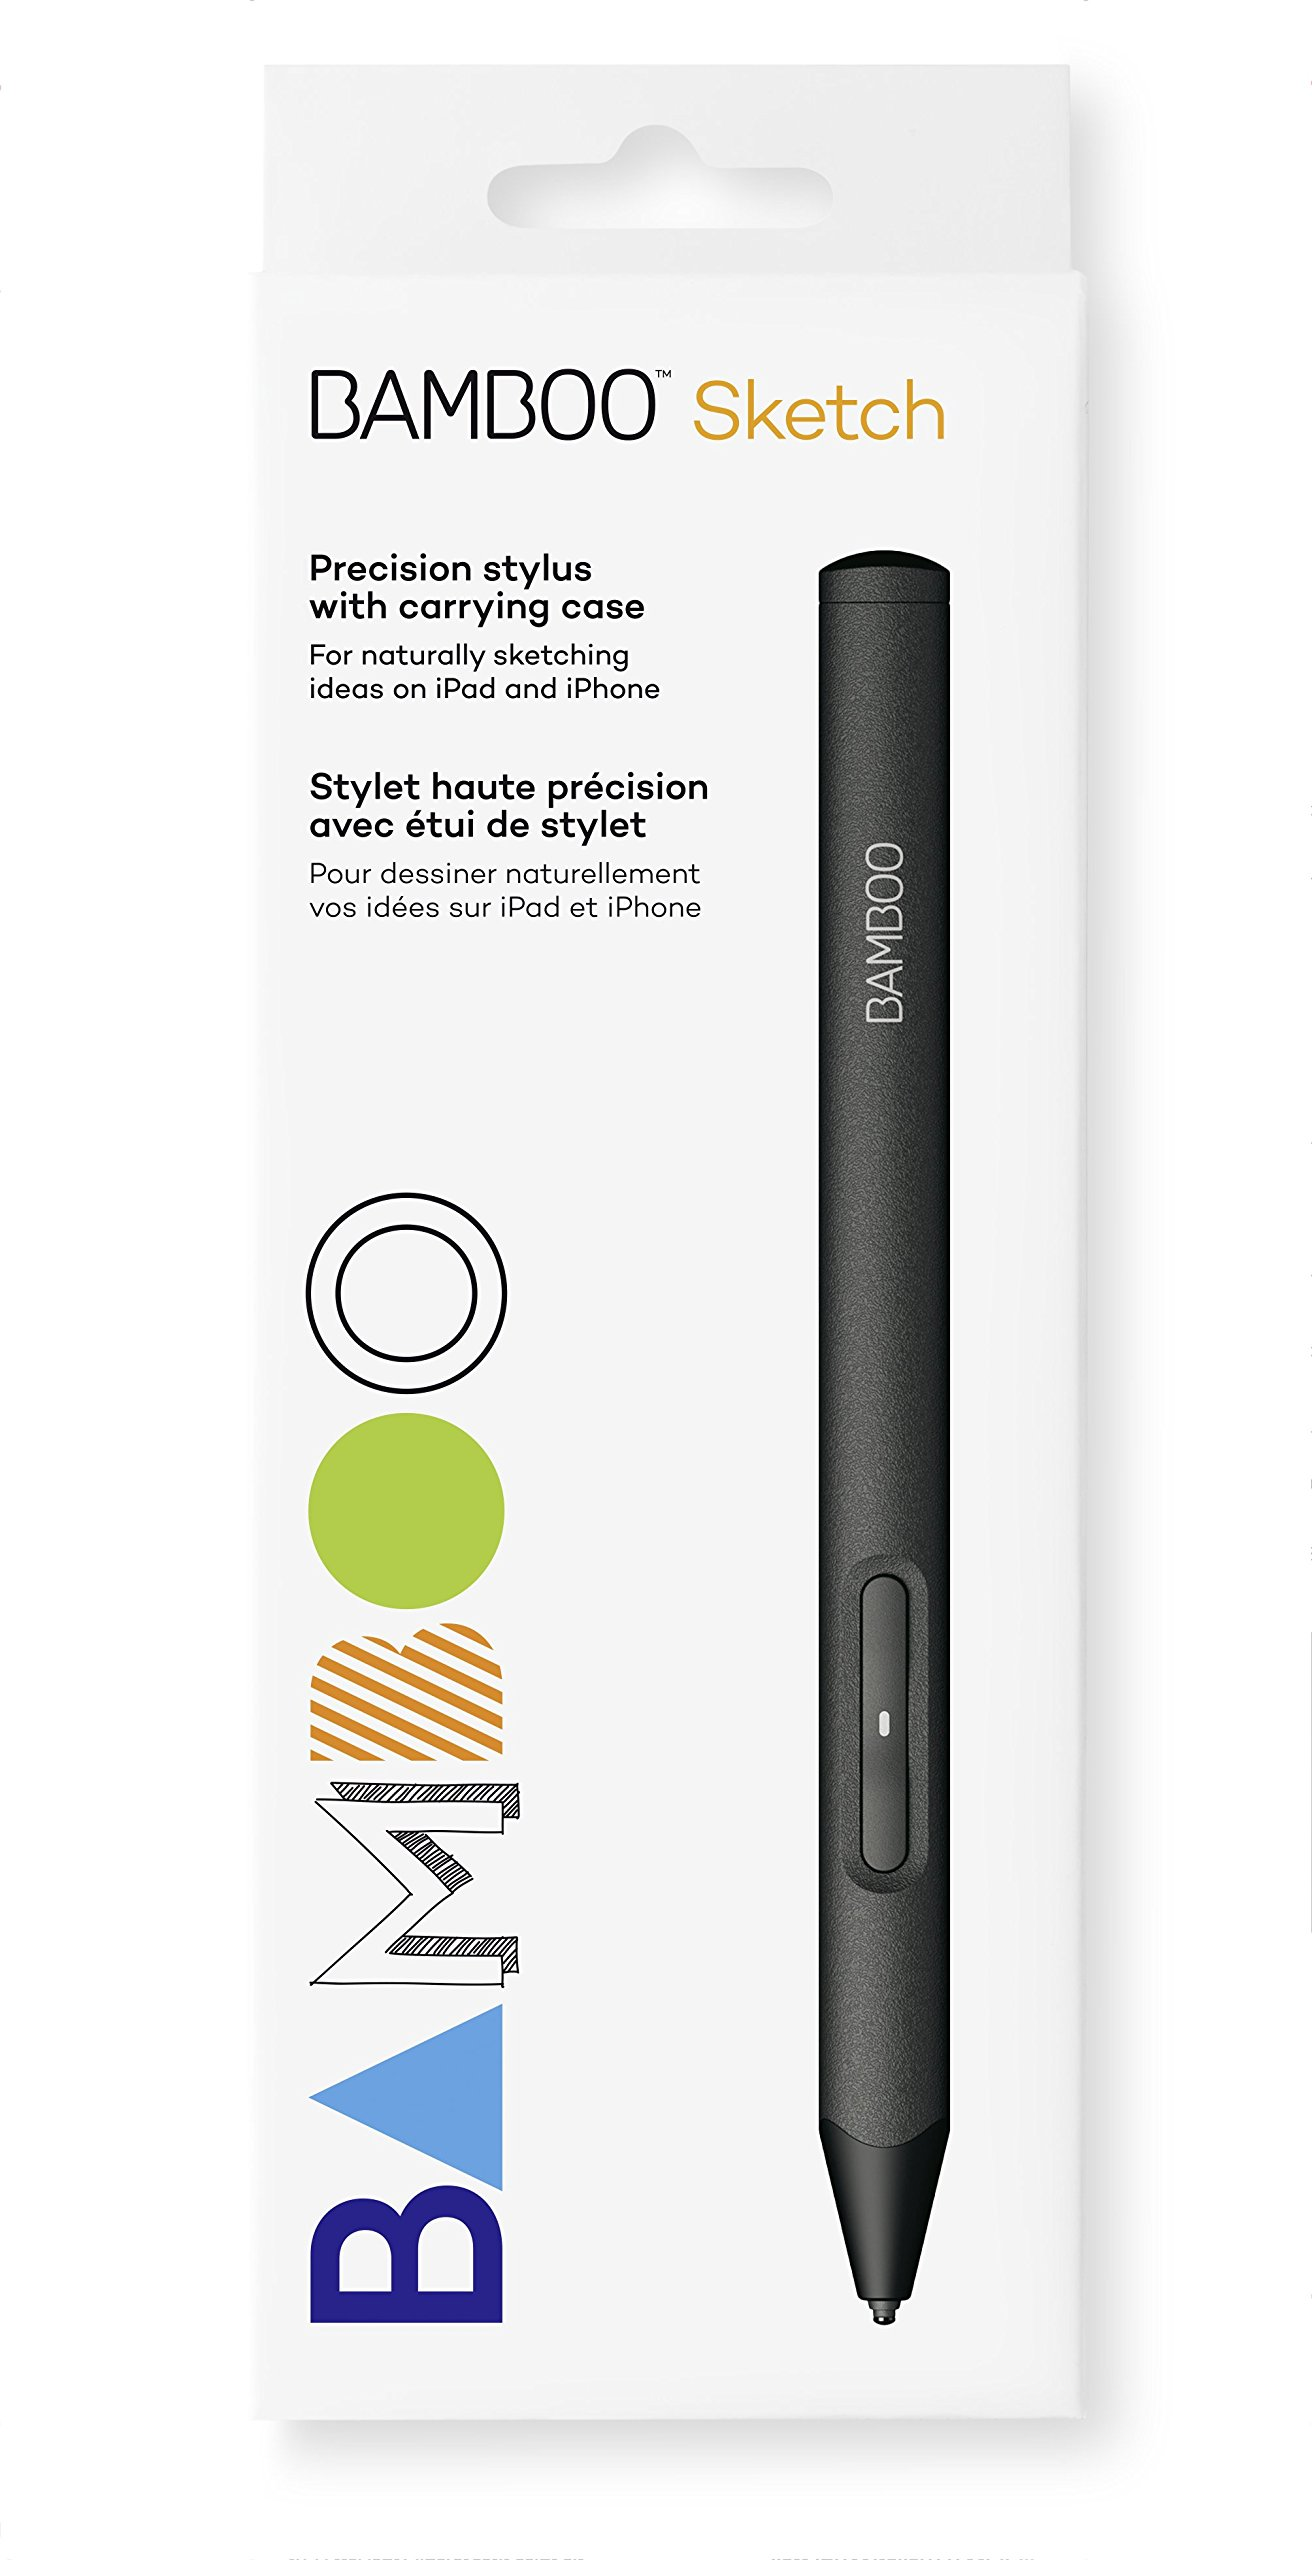 Wacom CS610PK Bamboo Sketch, CS-610PK (fine tip stylus by, Natural sketching on iPad and iPhone), black by Wacom